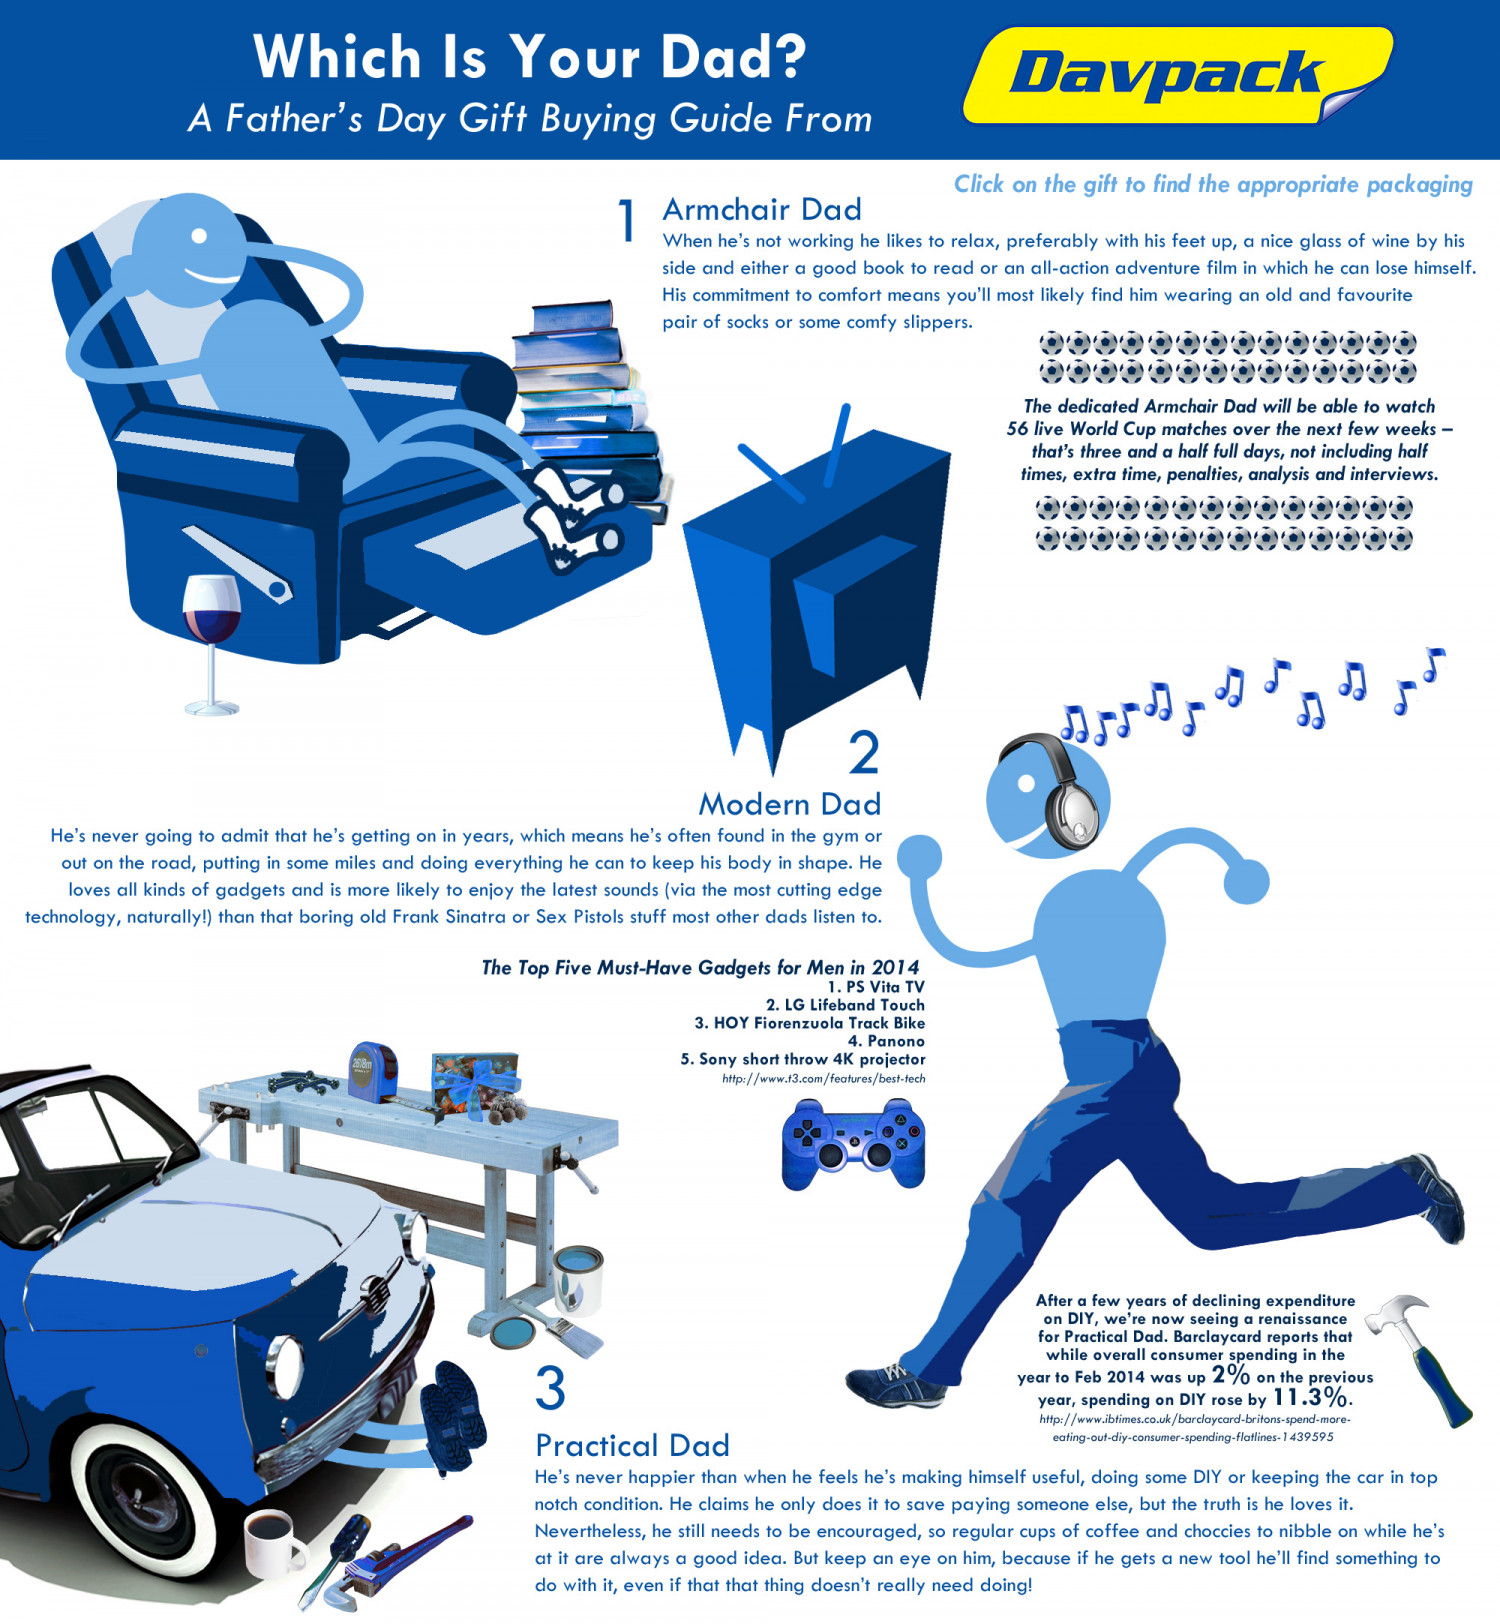 Which Is Your Dad? A Father's Day Gift Buying Guide From Davpack Infographic